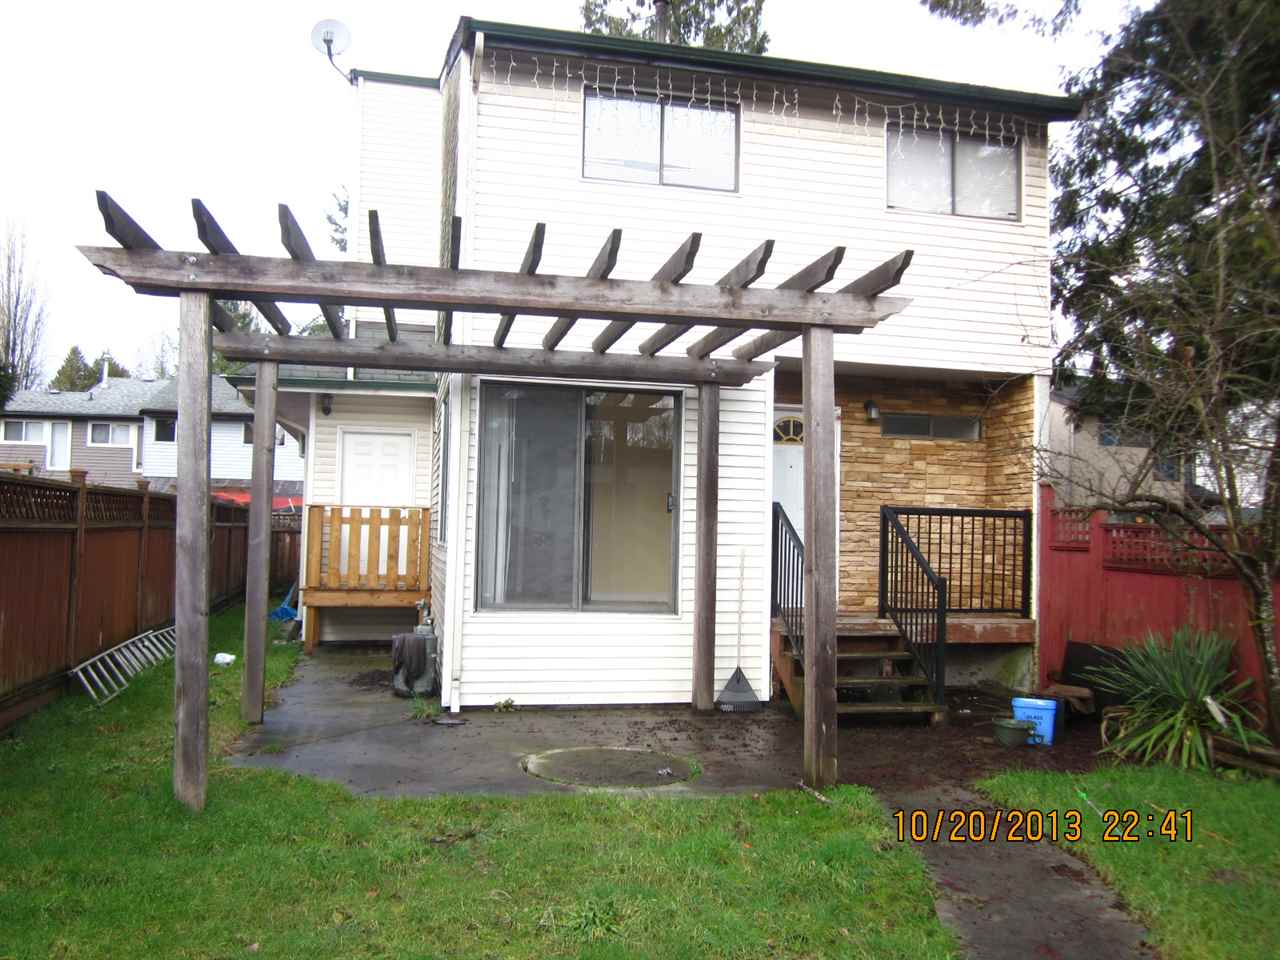 5 bedroom or 4+ den on the main floor with separate entrance ideal for home office. 2 story detached family home with single detached garage, fully fenced yard in a cul-de-sac. Perfect for the handy man to update to the needs of your family, approximate 400 sqft addition in 2010 with permits. Great location, walk to Westcoast Express, Skytrain, shopping, park, easy access to Hwy 1 and Lougheed. Furnace and Hot Water Tank 1 year old, quick possession possible.